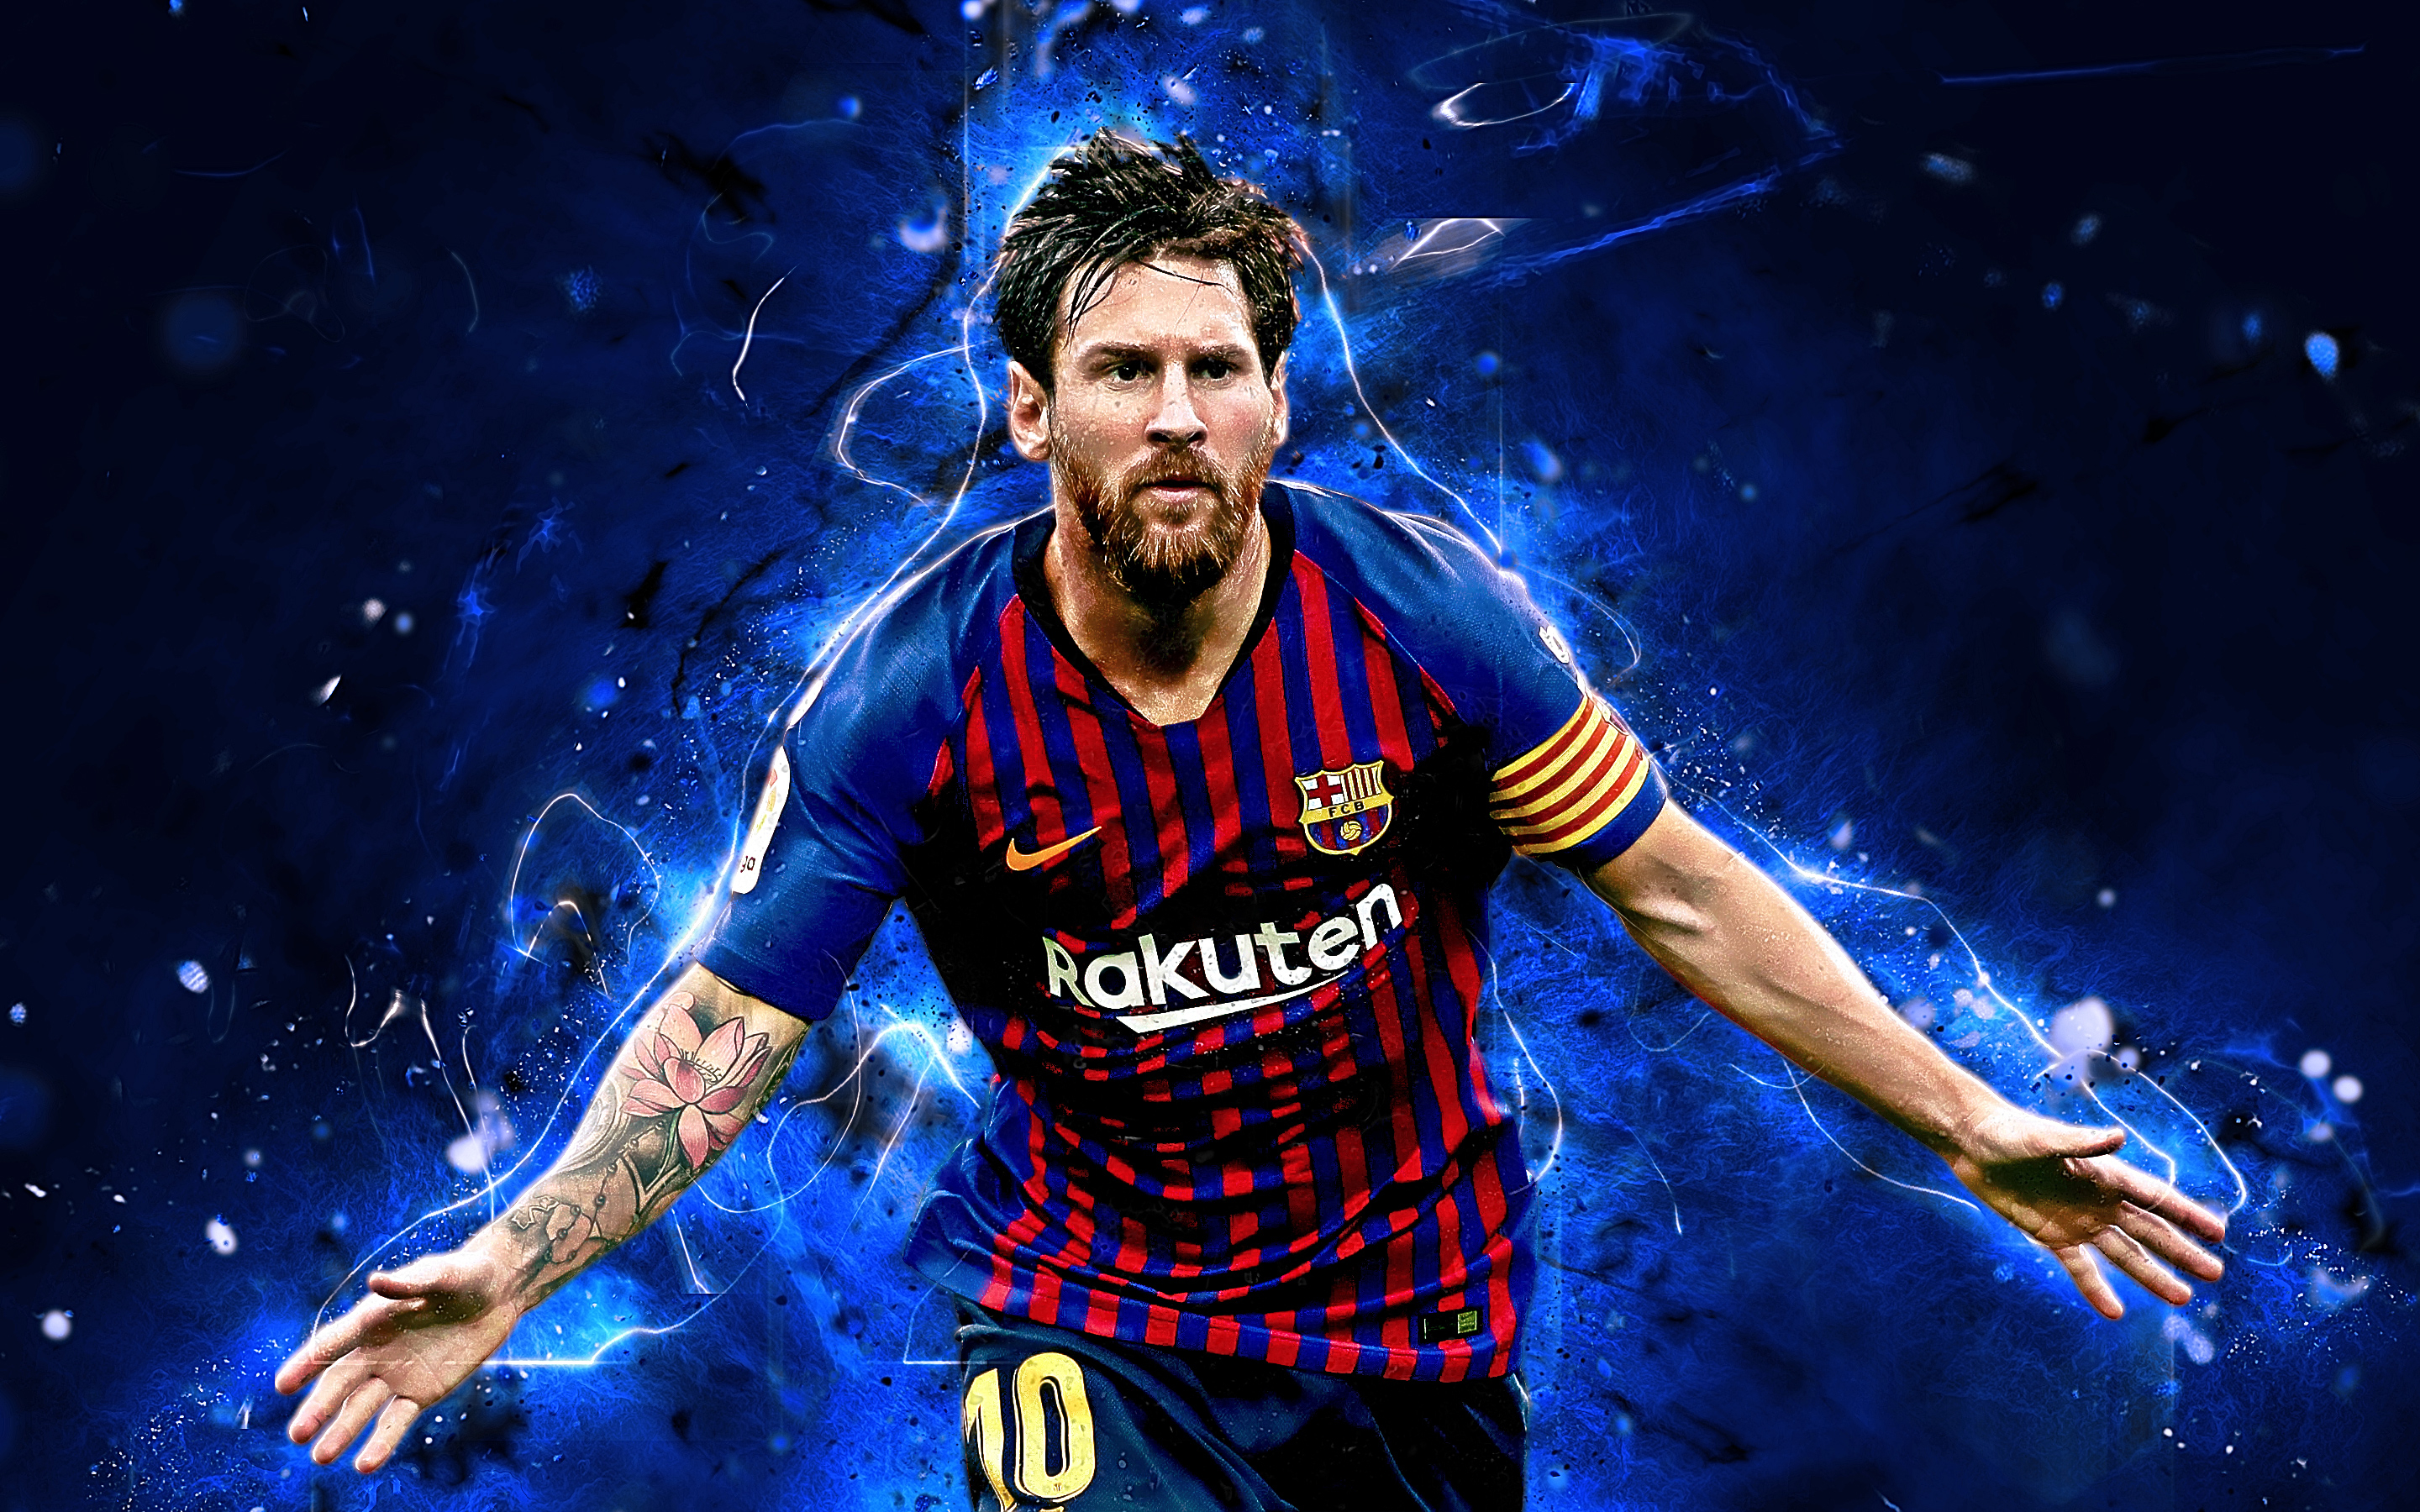 Messi Barcelona Wallpaper Posted By Sarah Anderson